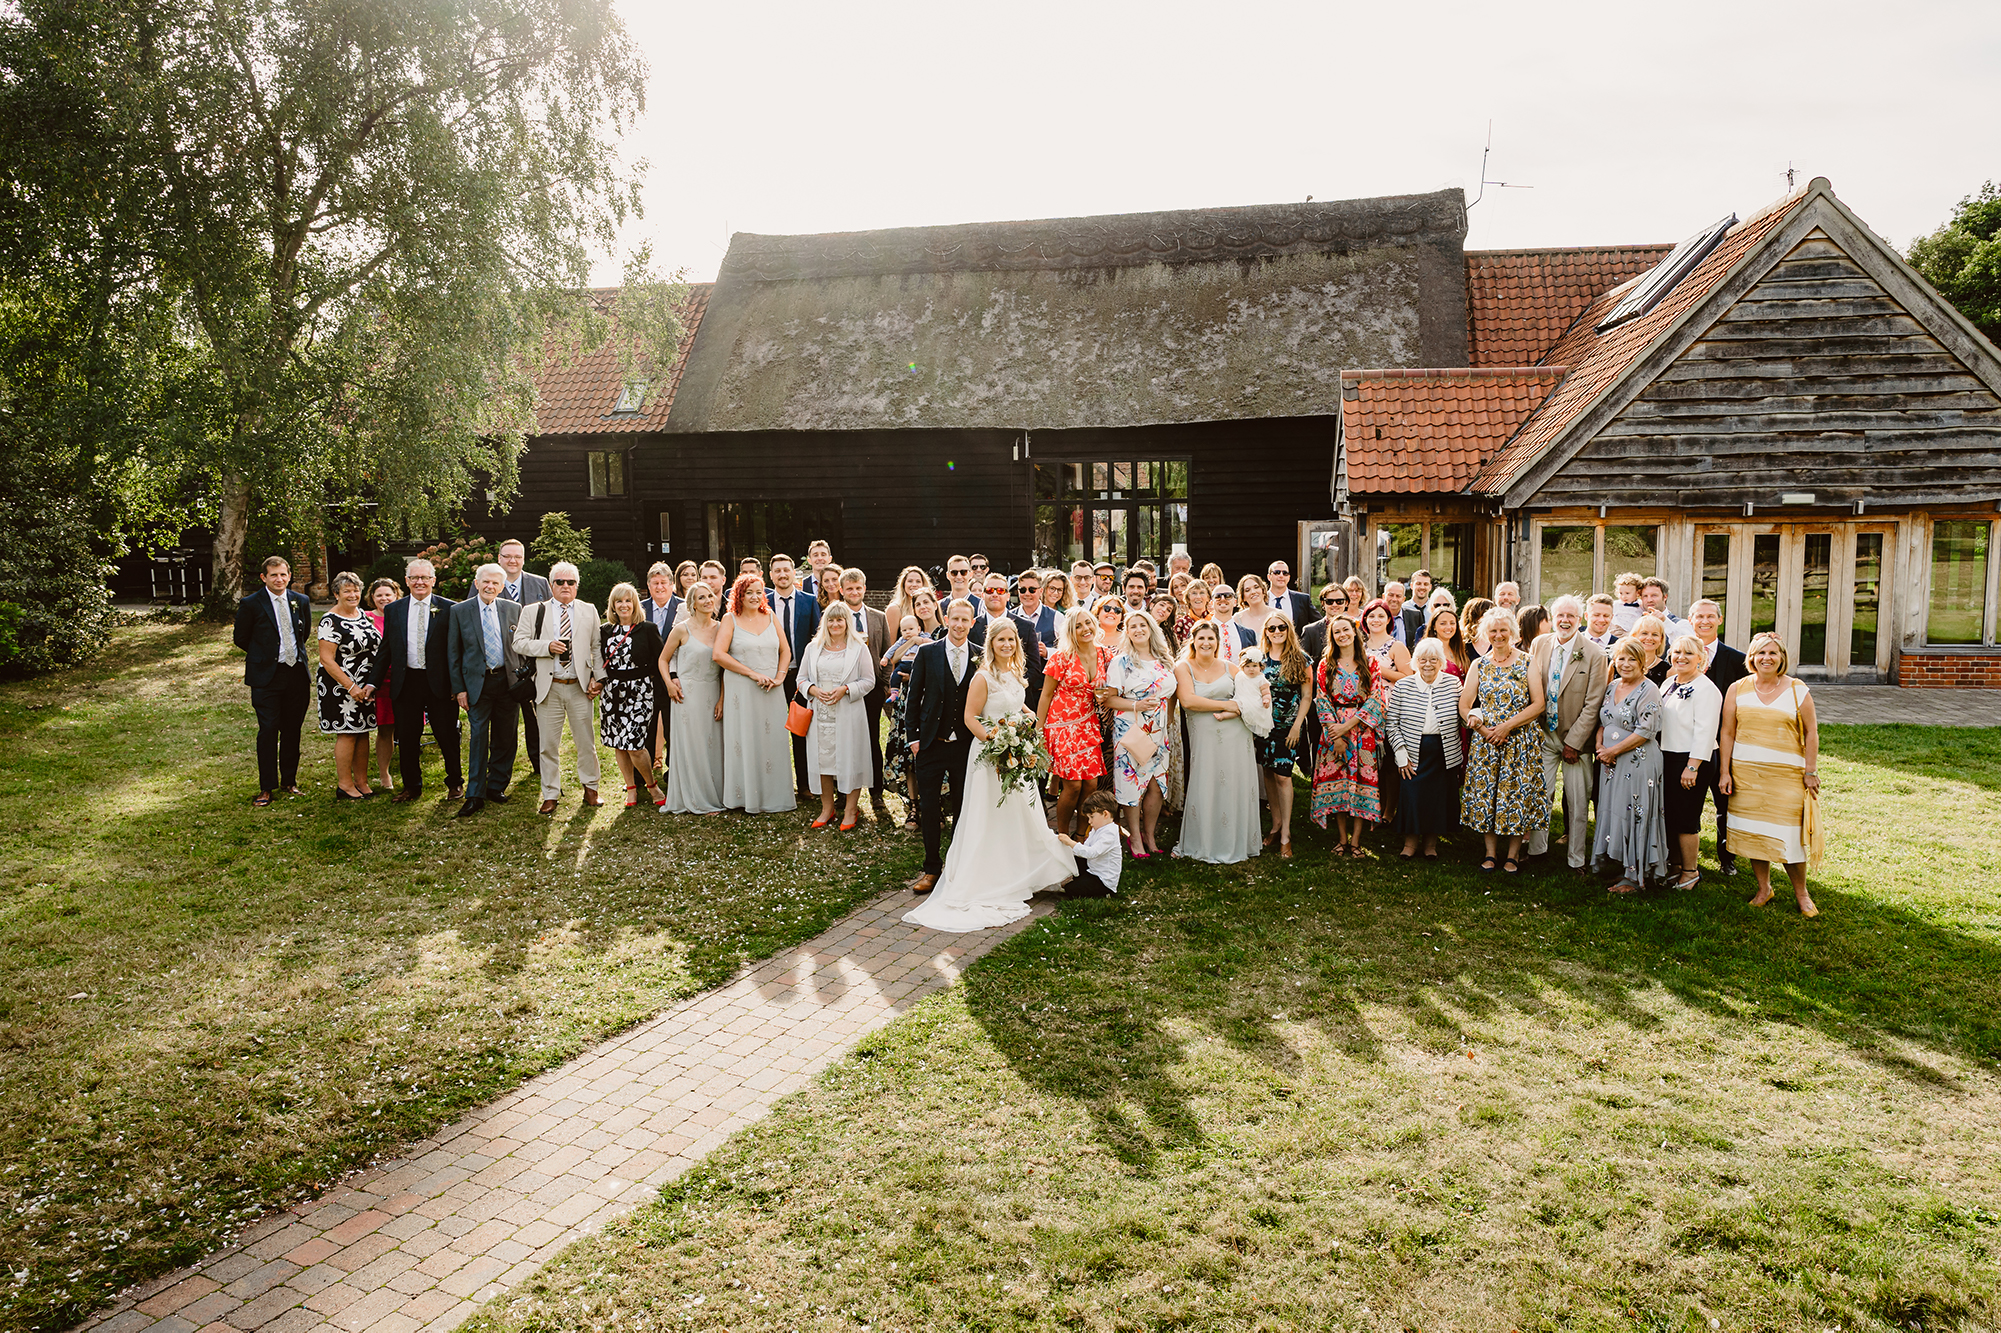 Wedding Photos of Entire Bridal Party at Ivy House Country Hotel